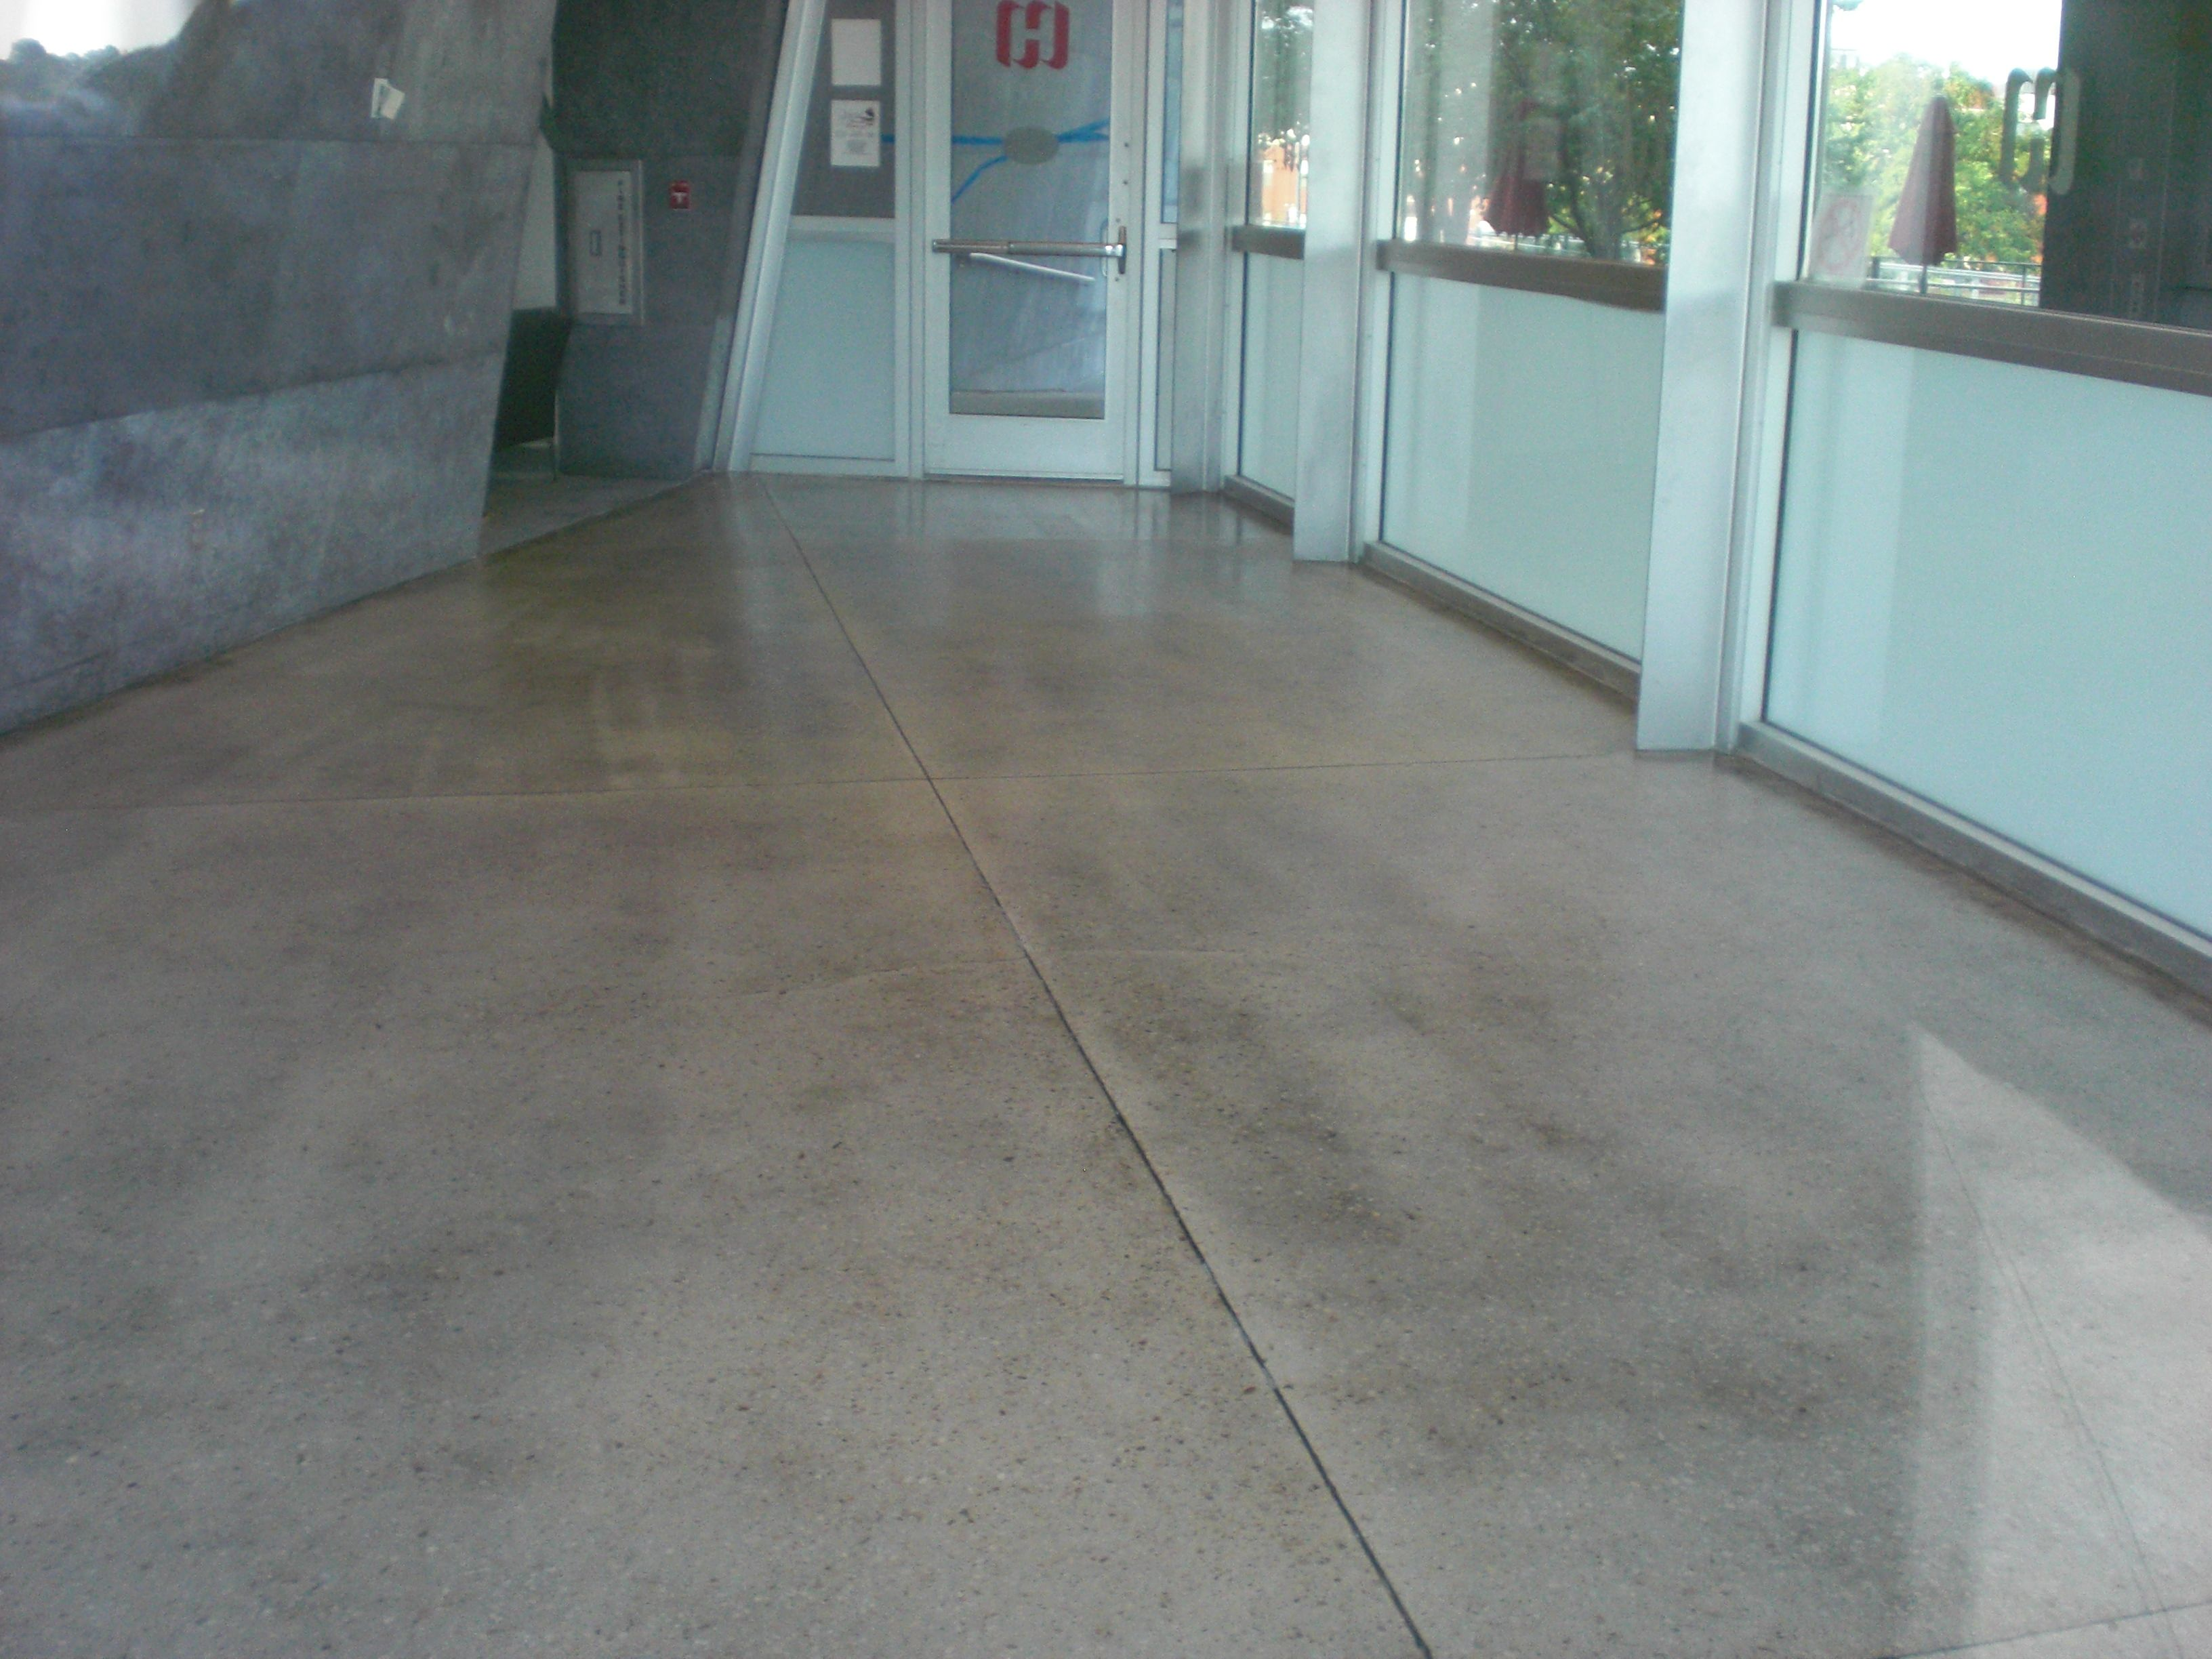 Hunter Museum Cafe Concrete Floor With A Clear Coat Sealer